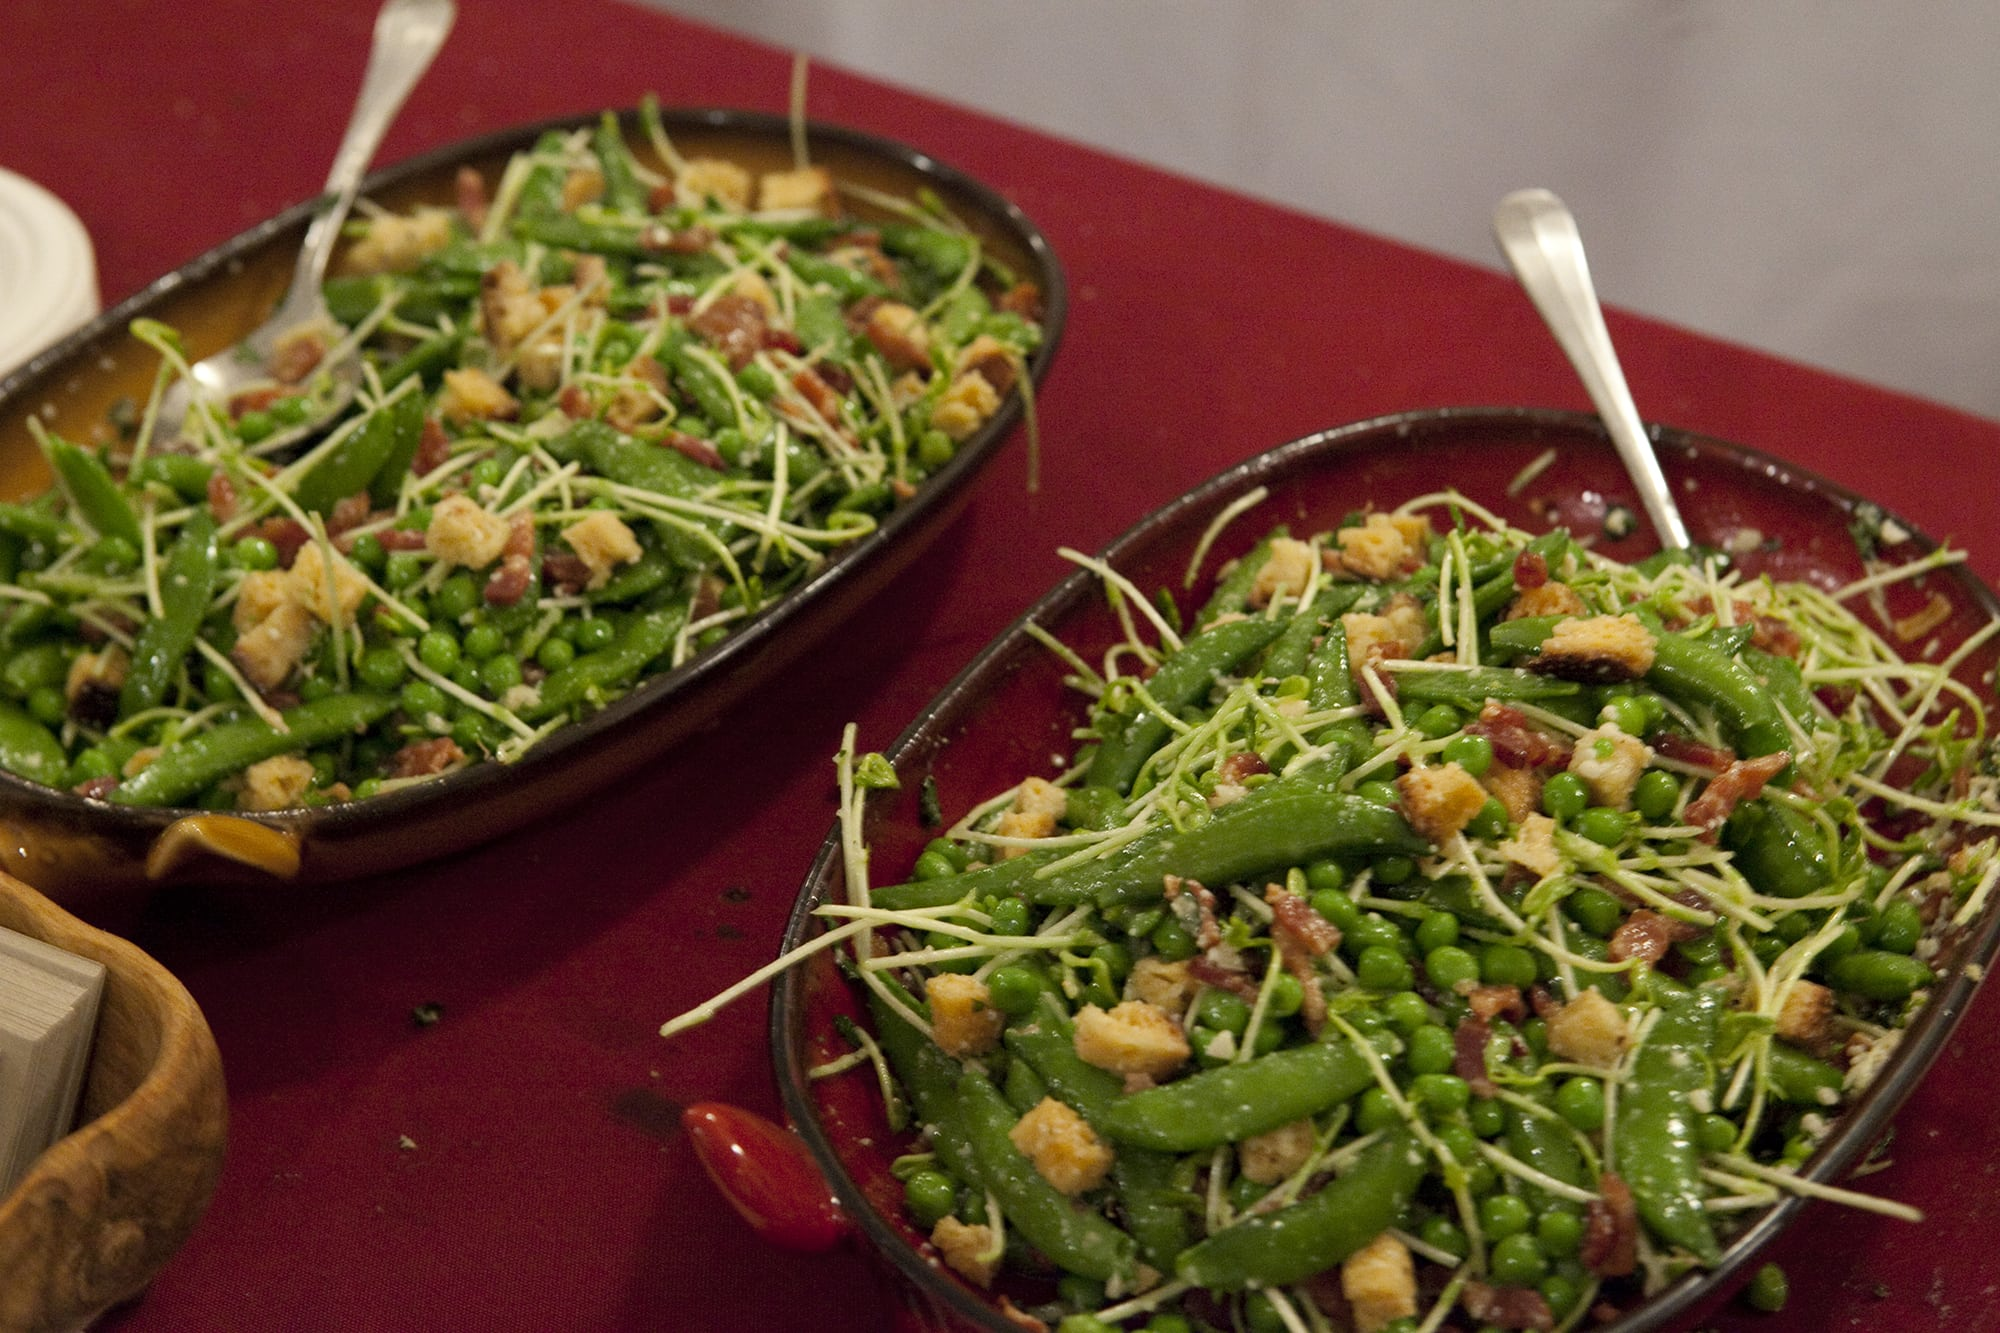 Spring pea bacon and pecorino salad from The Purple Pig at Baconfest Chicago - a bacon festival